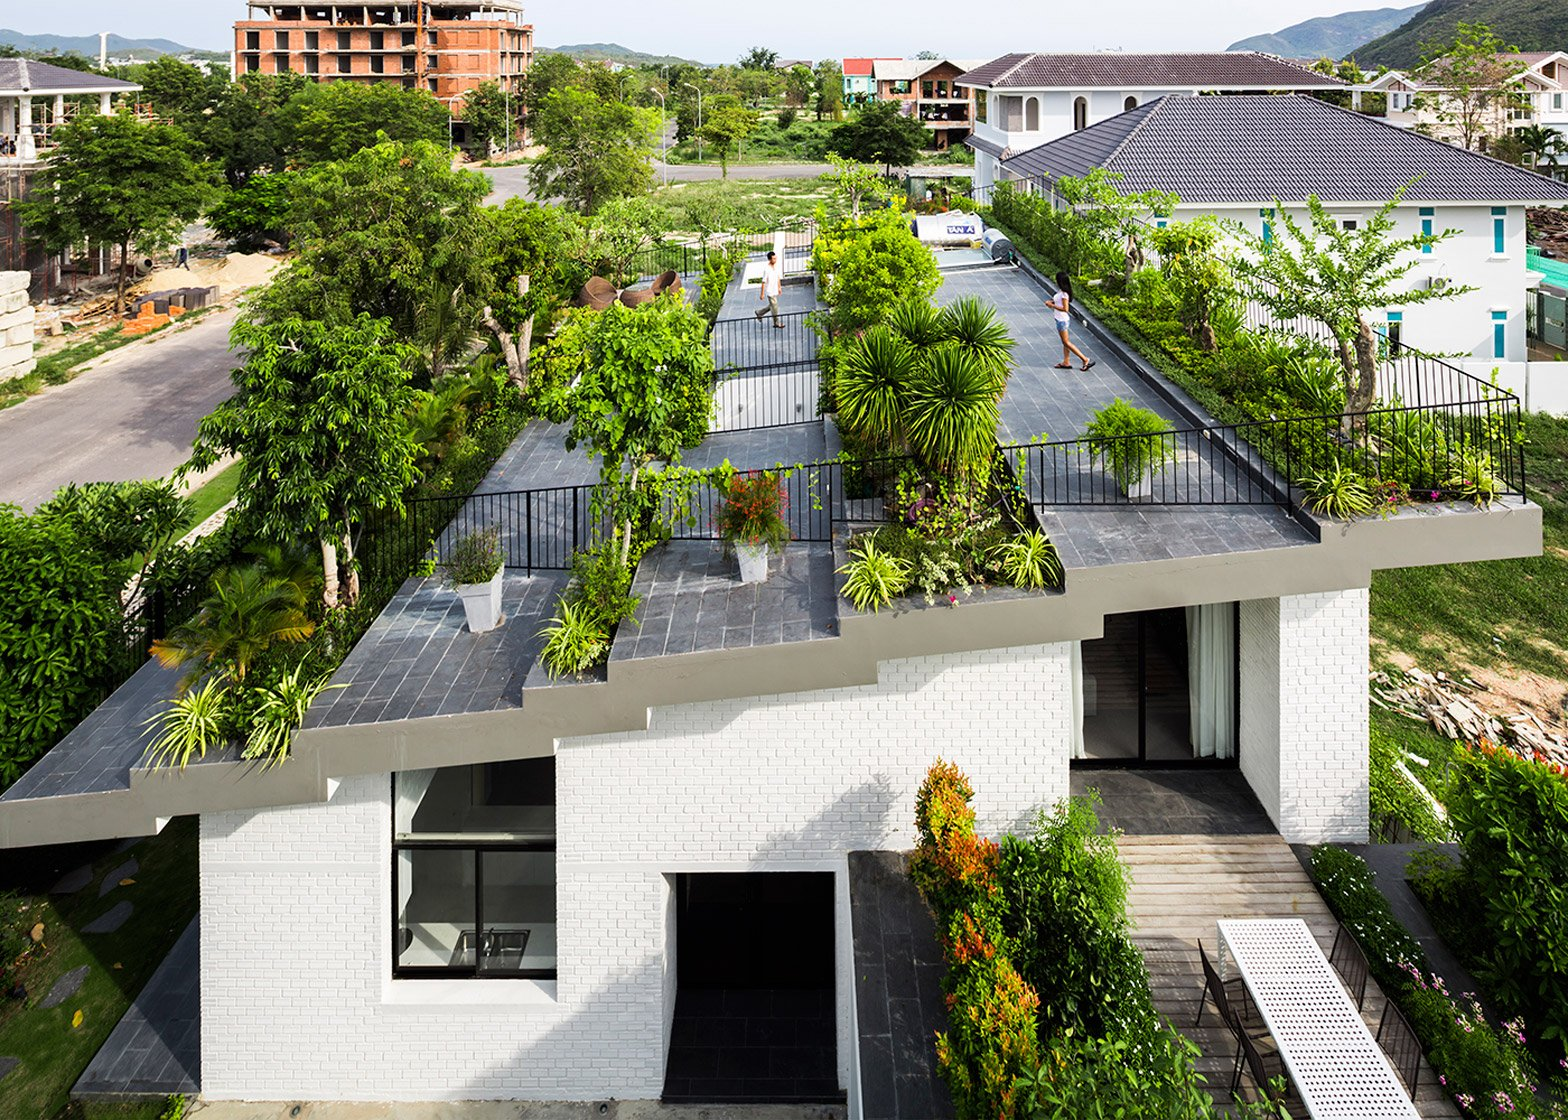 Stepped garden tops house by Vo Trong Nghia and Masaaki Iwamoto on plants for green roof, plants for rain gardens, plants for container gardens, plants for planters,